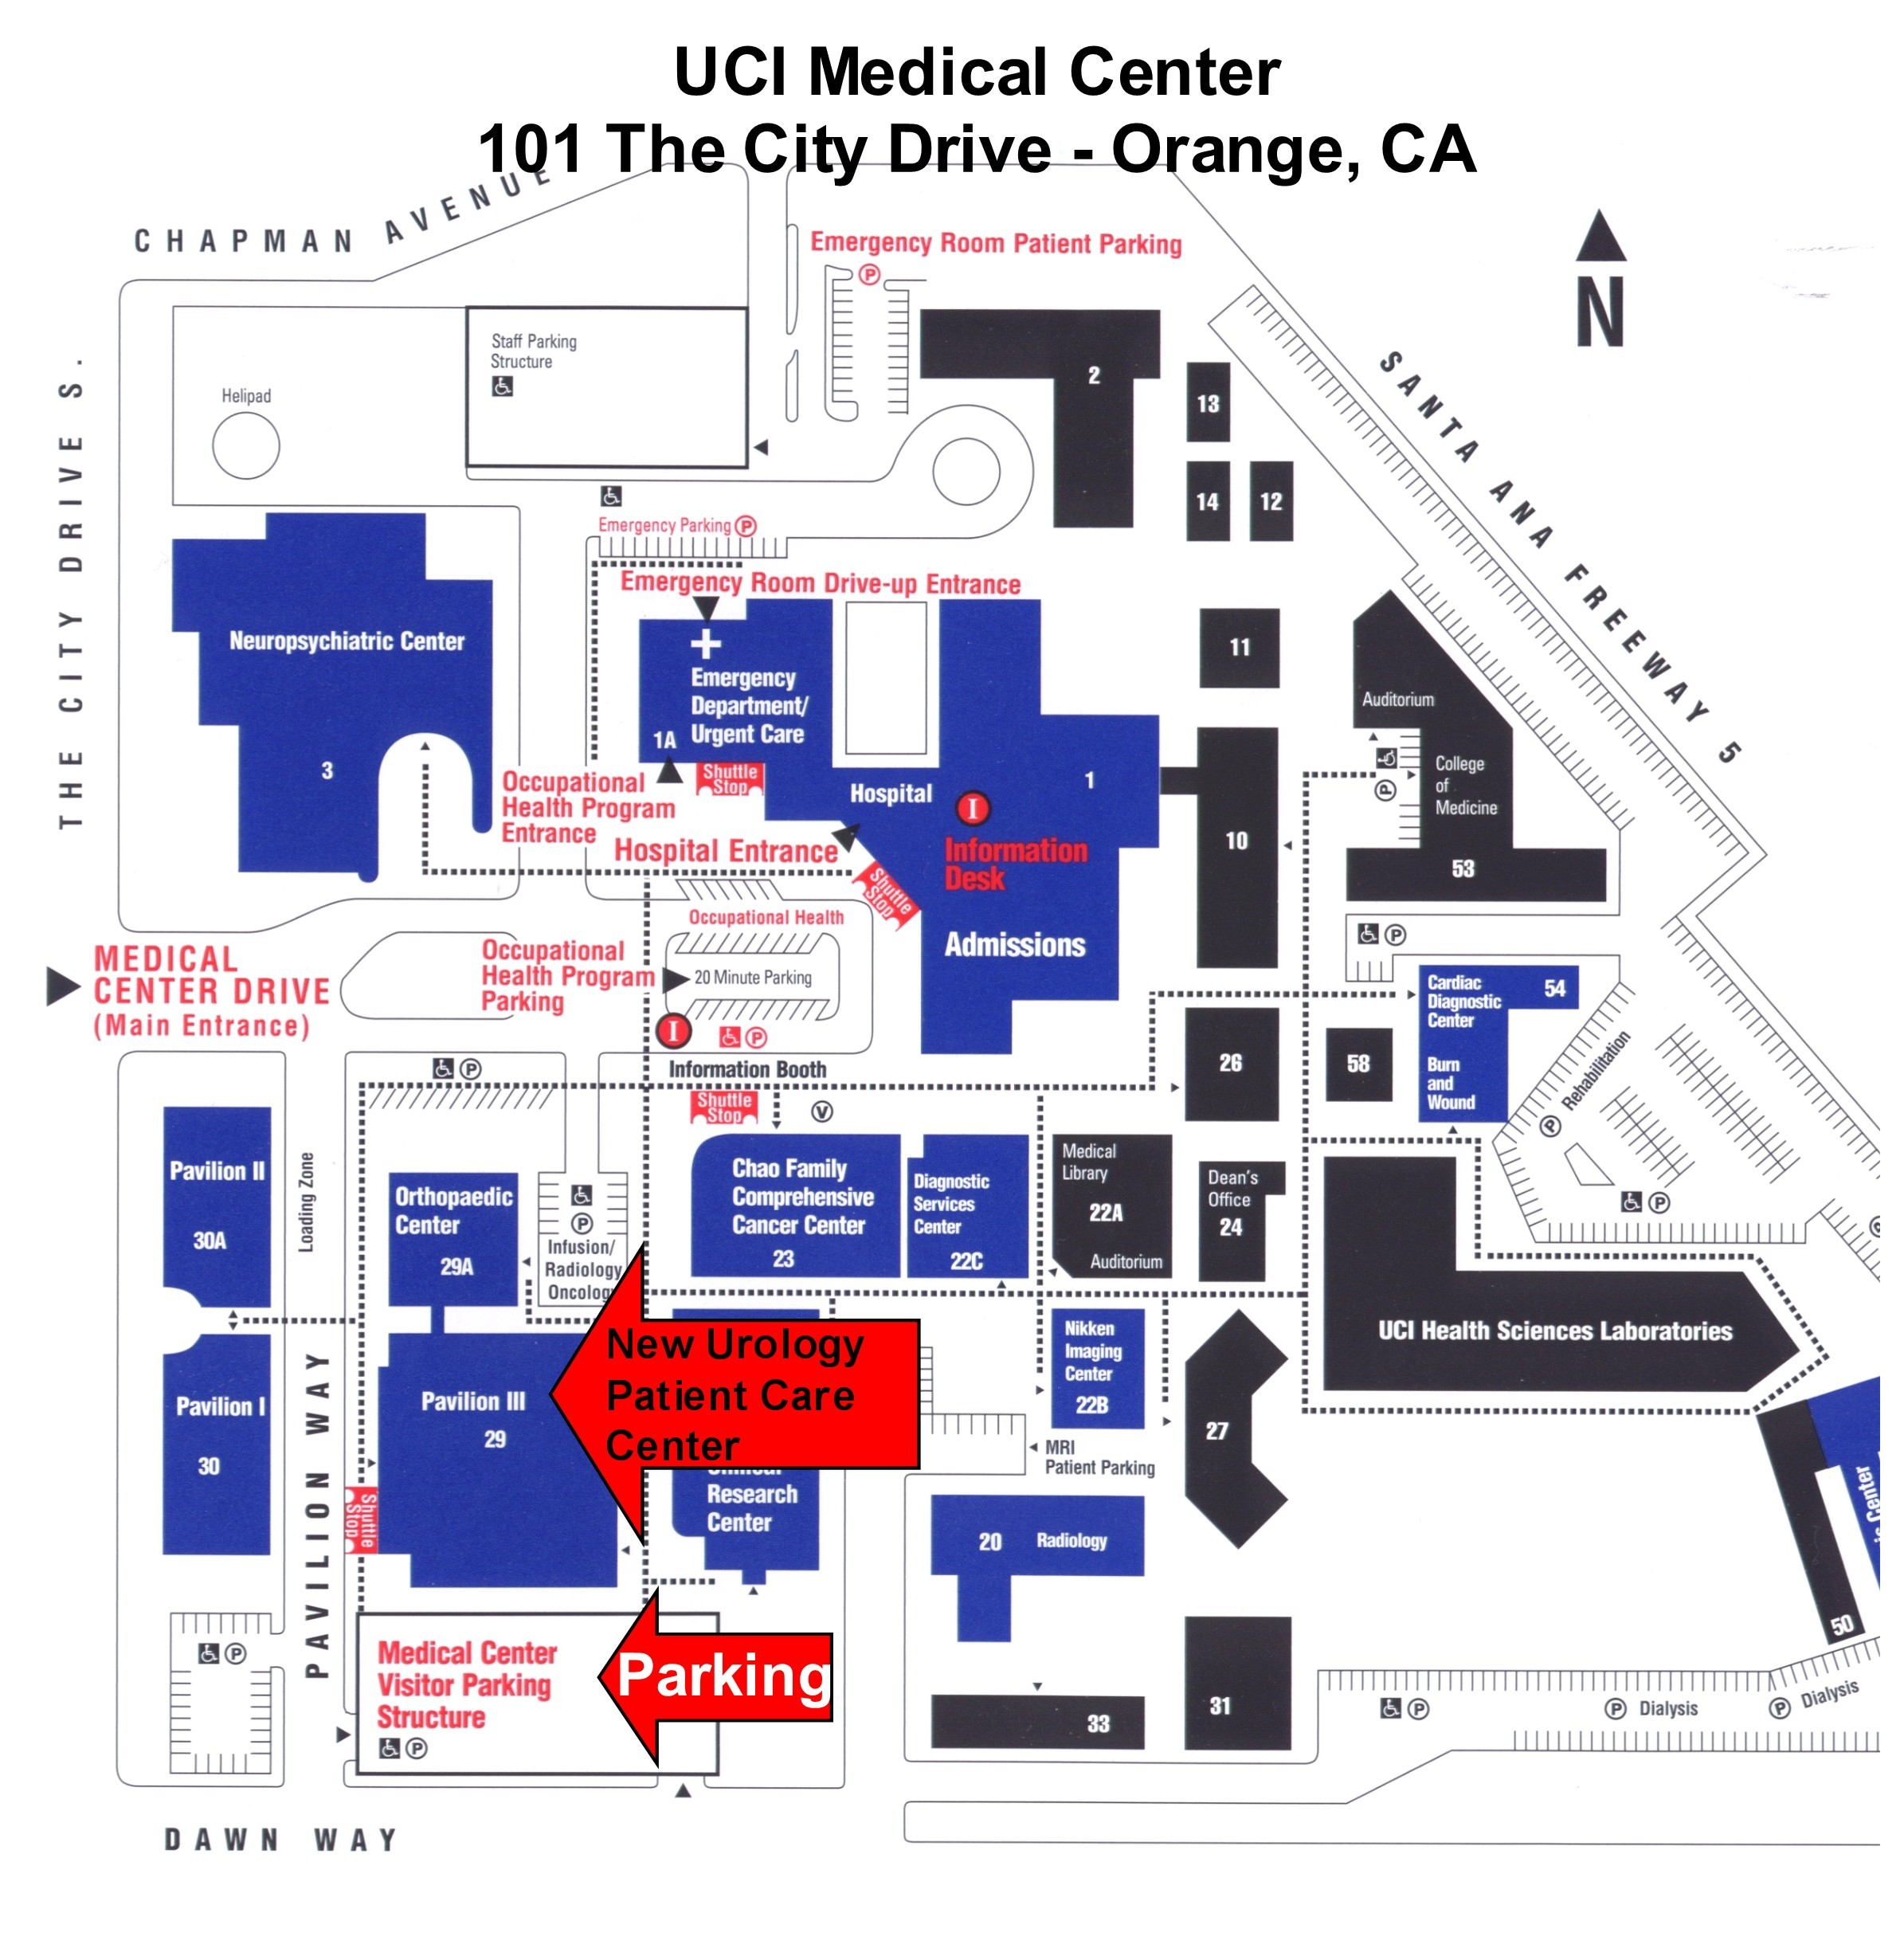 Uci Medical Center Map | Rtlbreakfastclub on uci campus village map, uci interactive map, university of california irvine campus map, uci building map, uci hospital map, uci map pdf, uci health sciences campus map, uci housing map, uci student center map, uci campus irvine ca, uci campus map printable, uc irvine campus map, uci campus parking, uci map with directory, saddleback college campus map, uci main campus map,